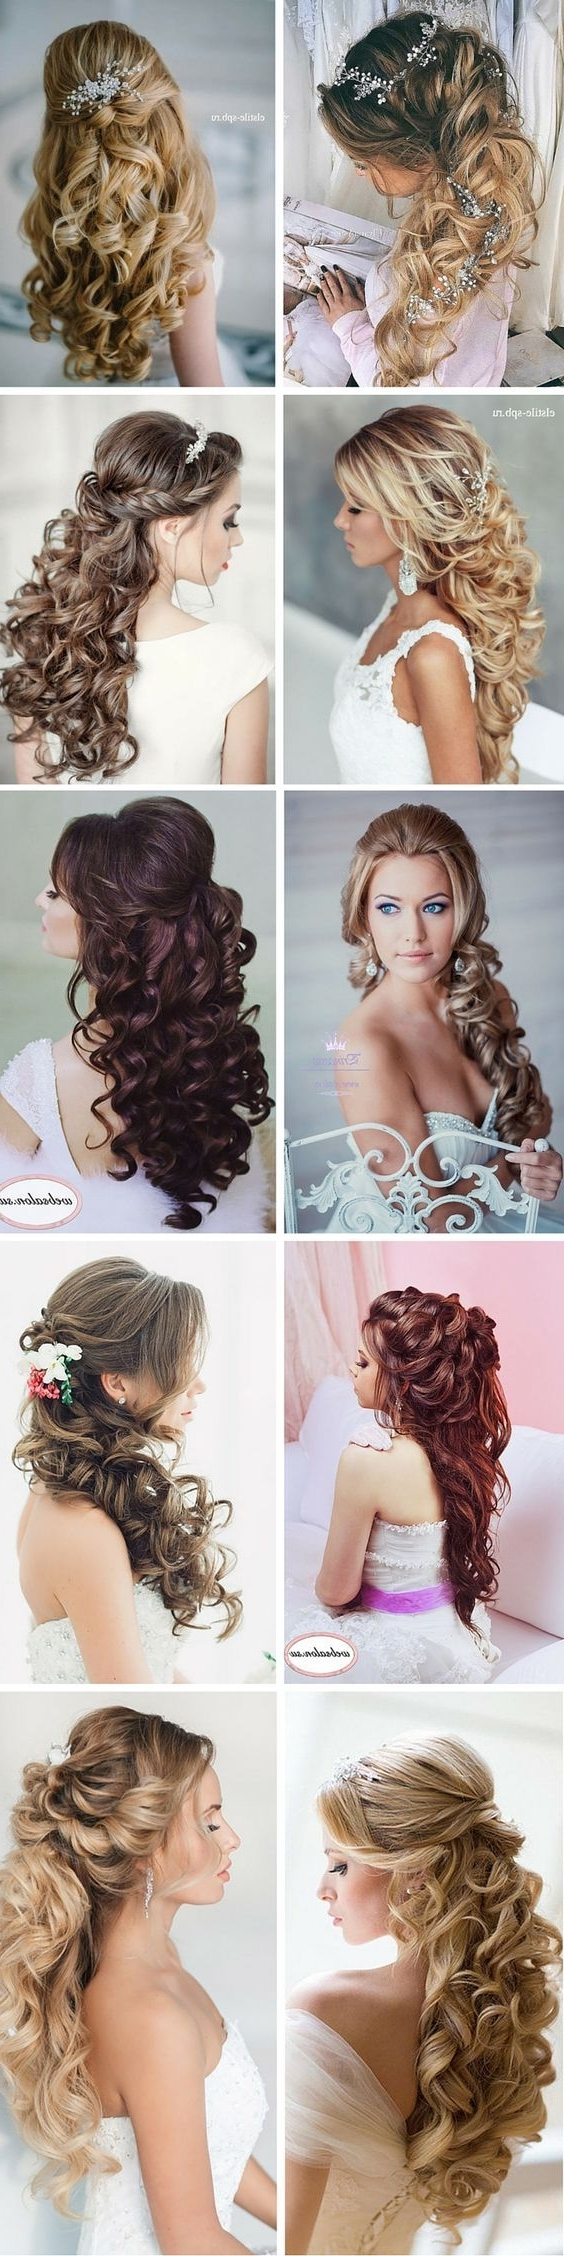 Favorite Wedding Hairstyles For Long Down Curls Hair Intended For Elegant Curly Half Up Half Down Wedding Hairstyles / Http://www (View 10 of 15)